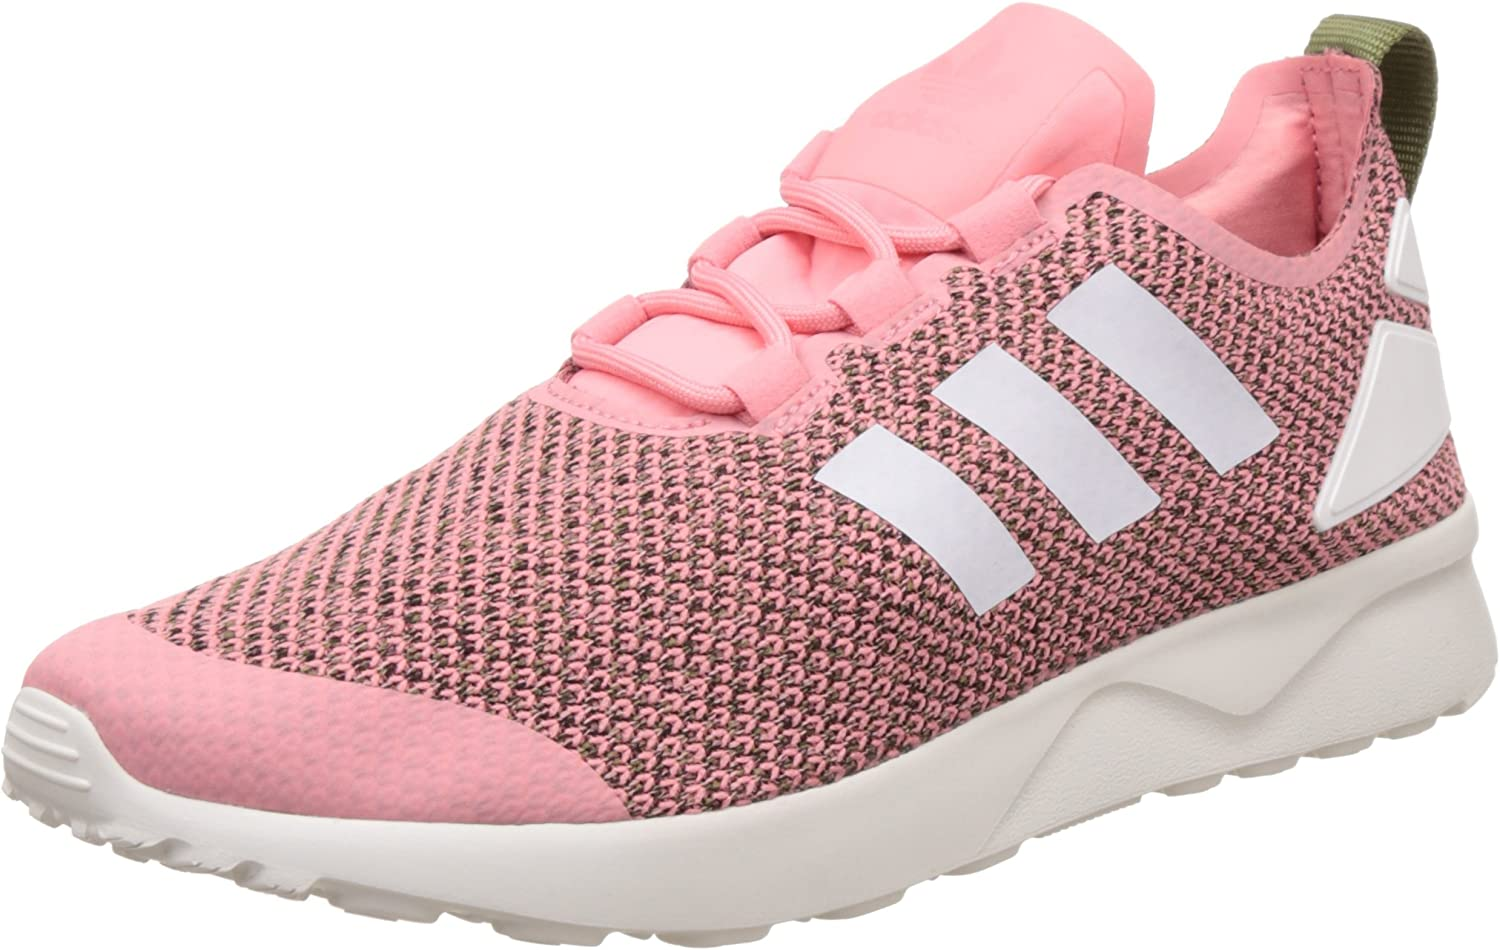 adidas Originals ZX Flux ADV Verve Womens Sneakers/Shoes